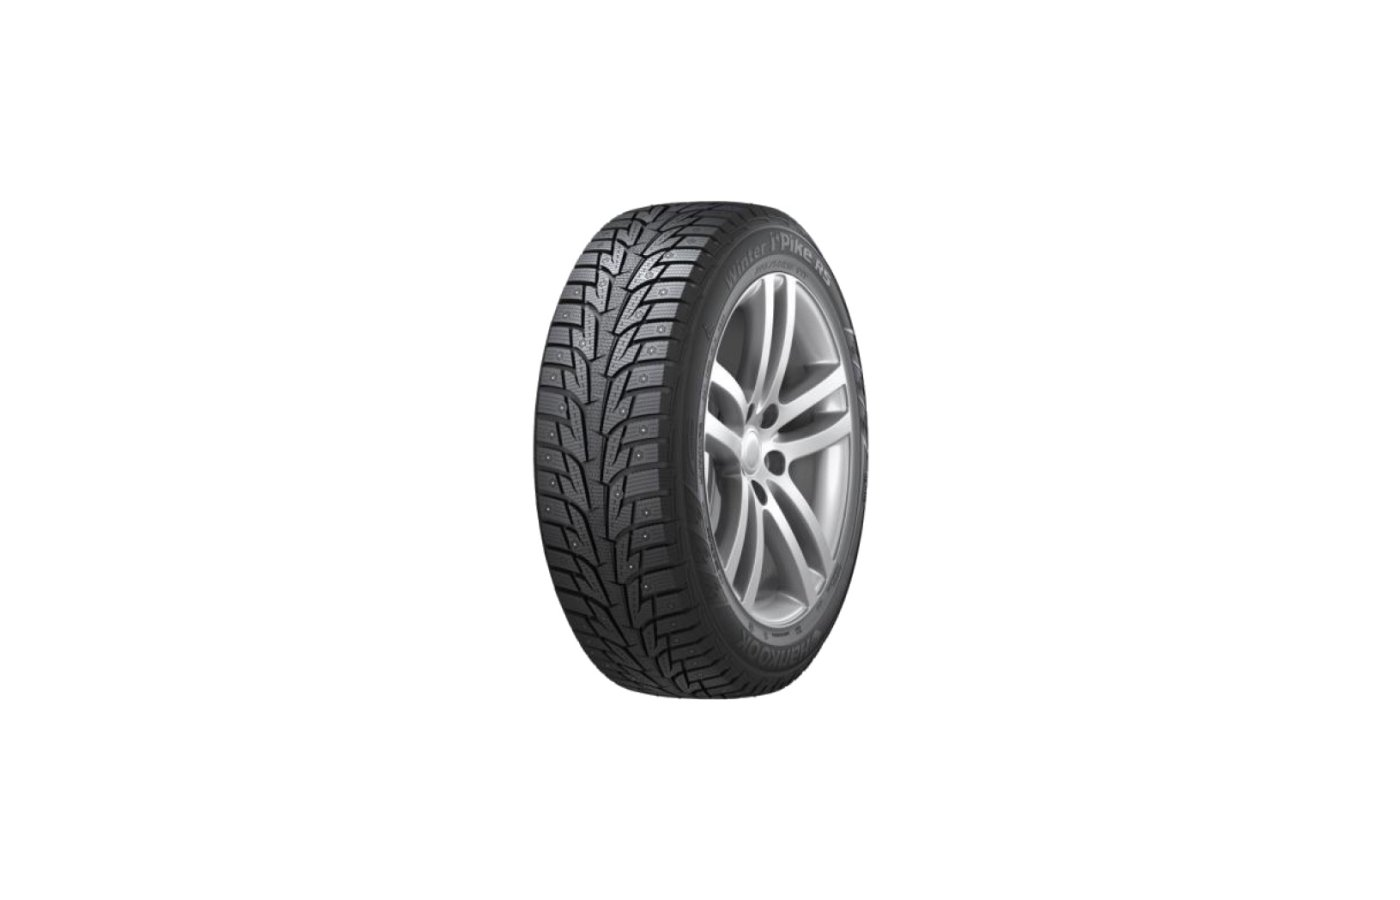 Шина Hankook Winter i*Pike RS W419 235/45 R17 TL 97T XL шип